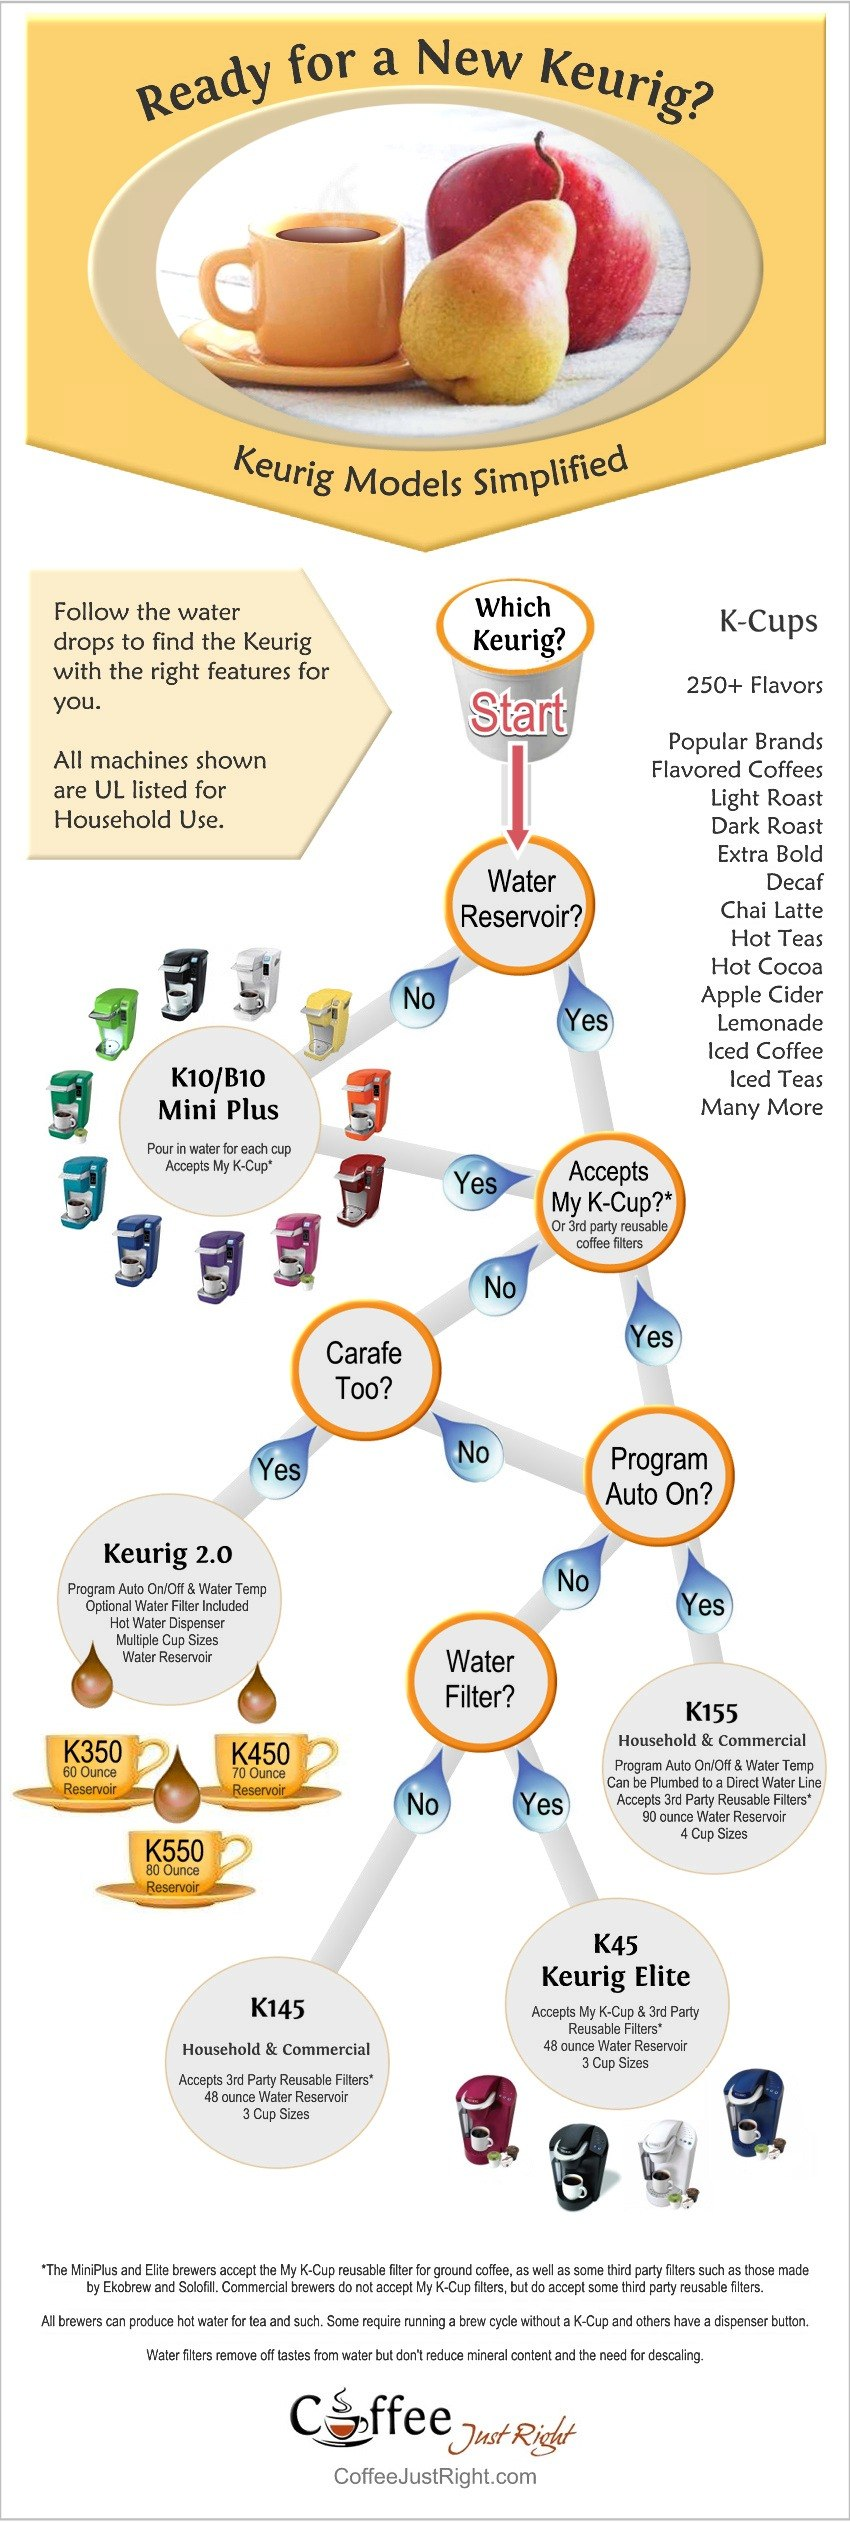 Keurig Selection Made Easy Infographic